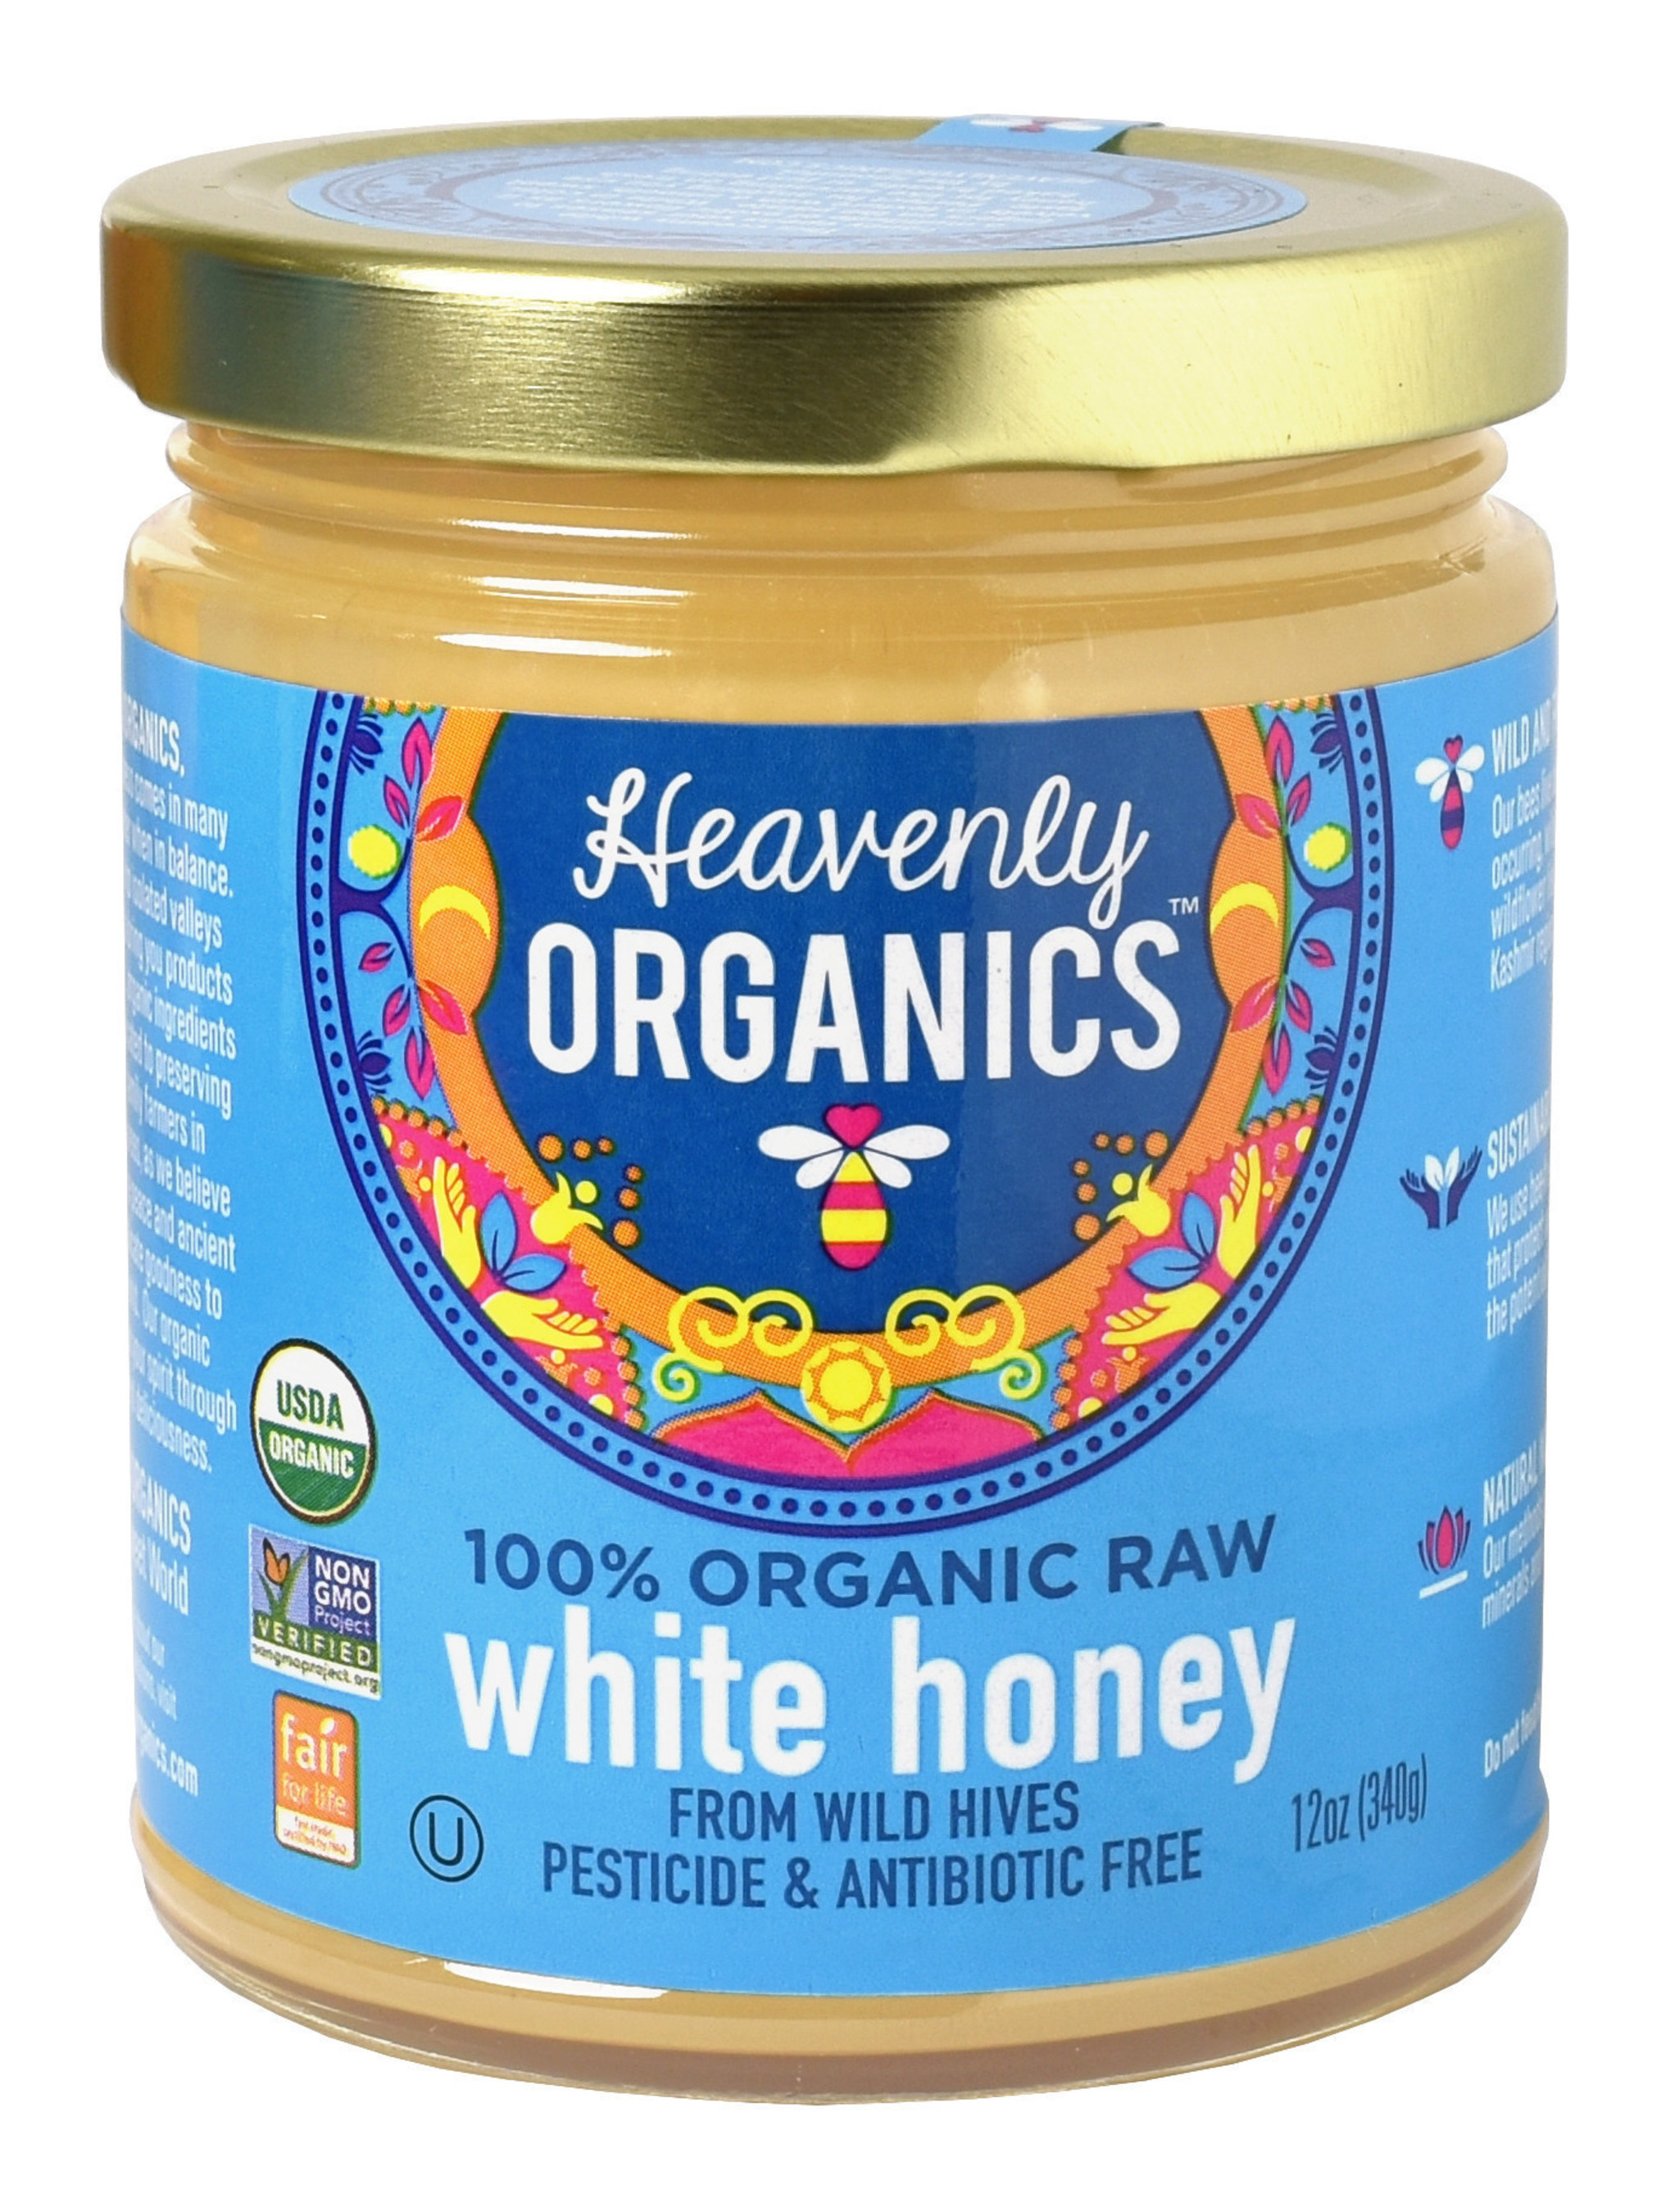 Heavenly Organics 100% Organic, Raw, Pesticide and Antibiotic Free White Honey from Wild Beehives